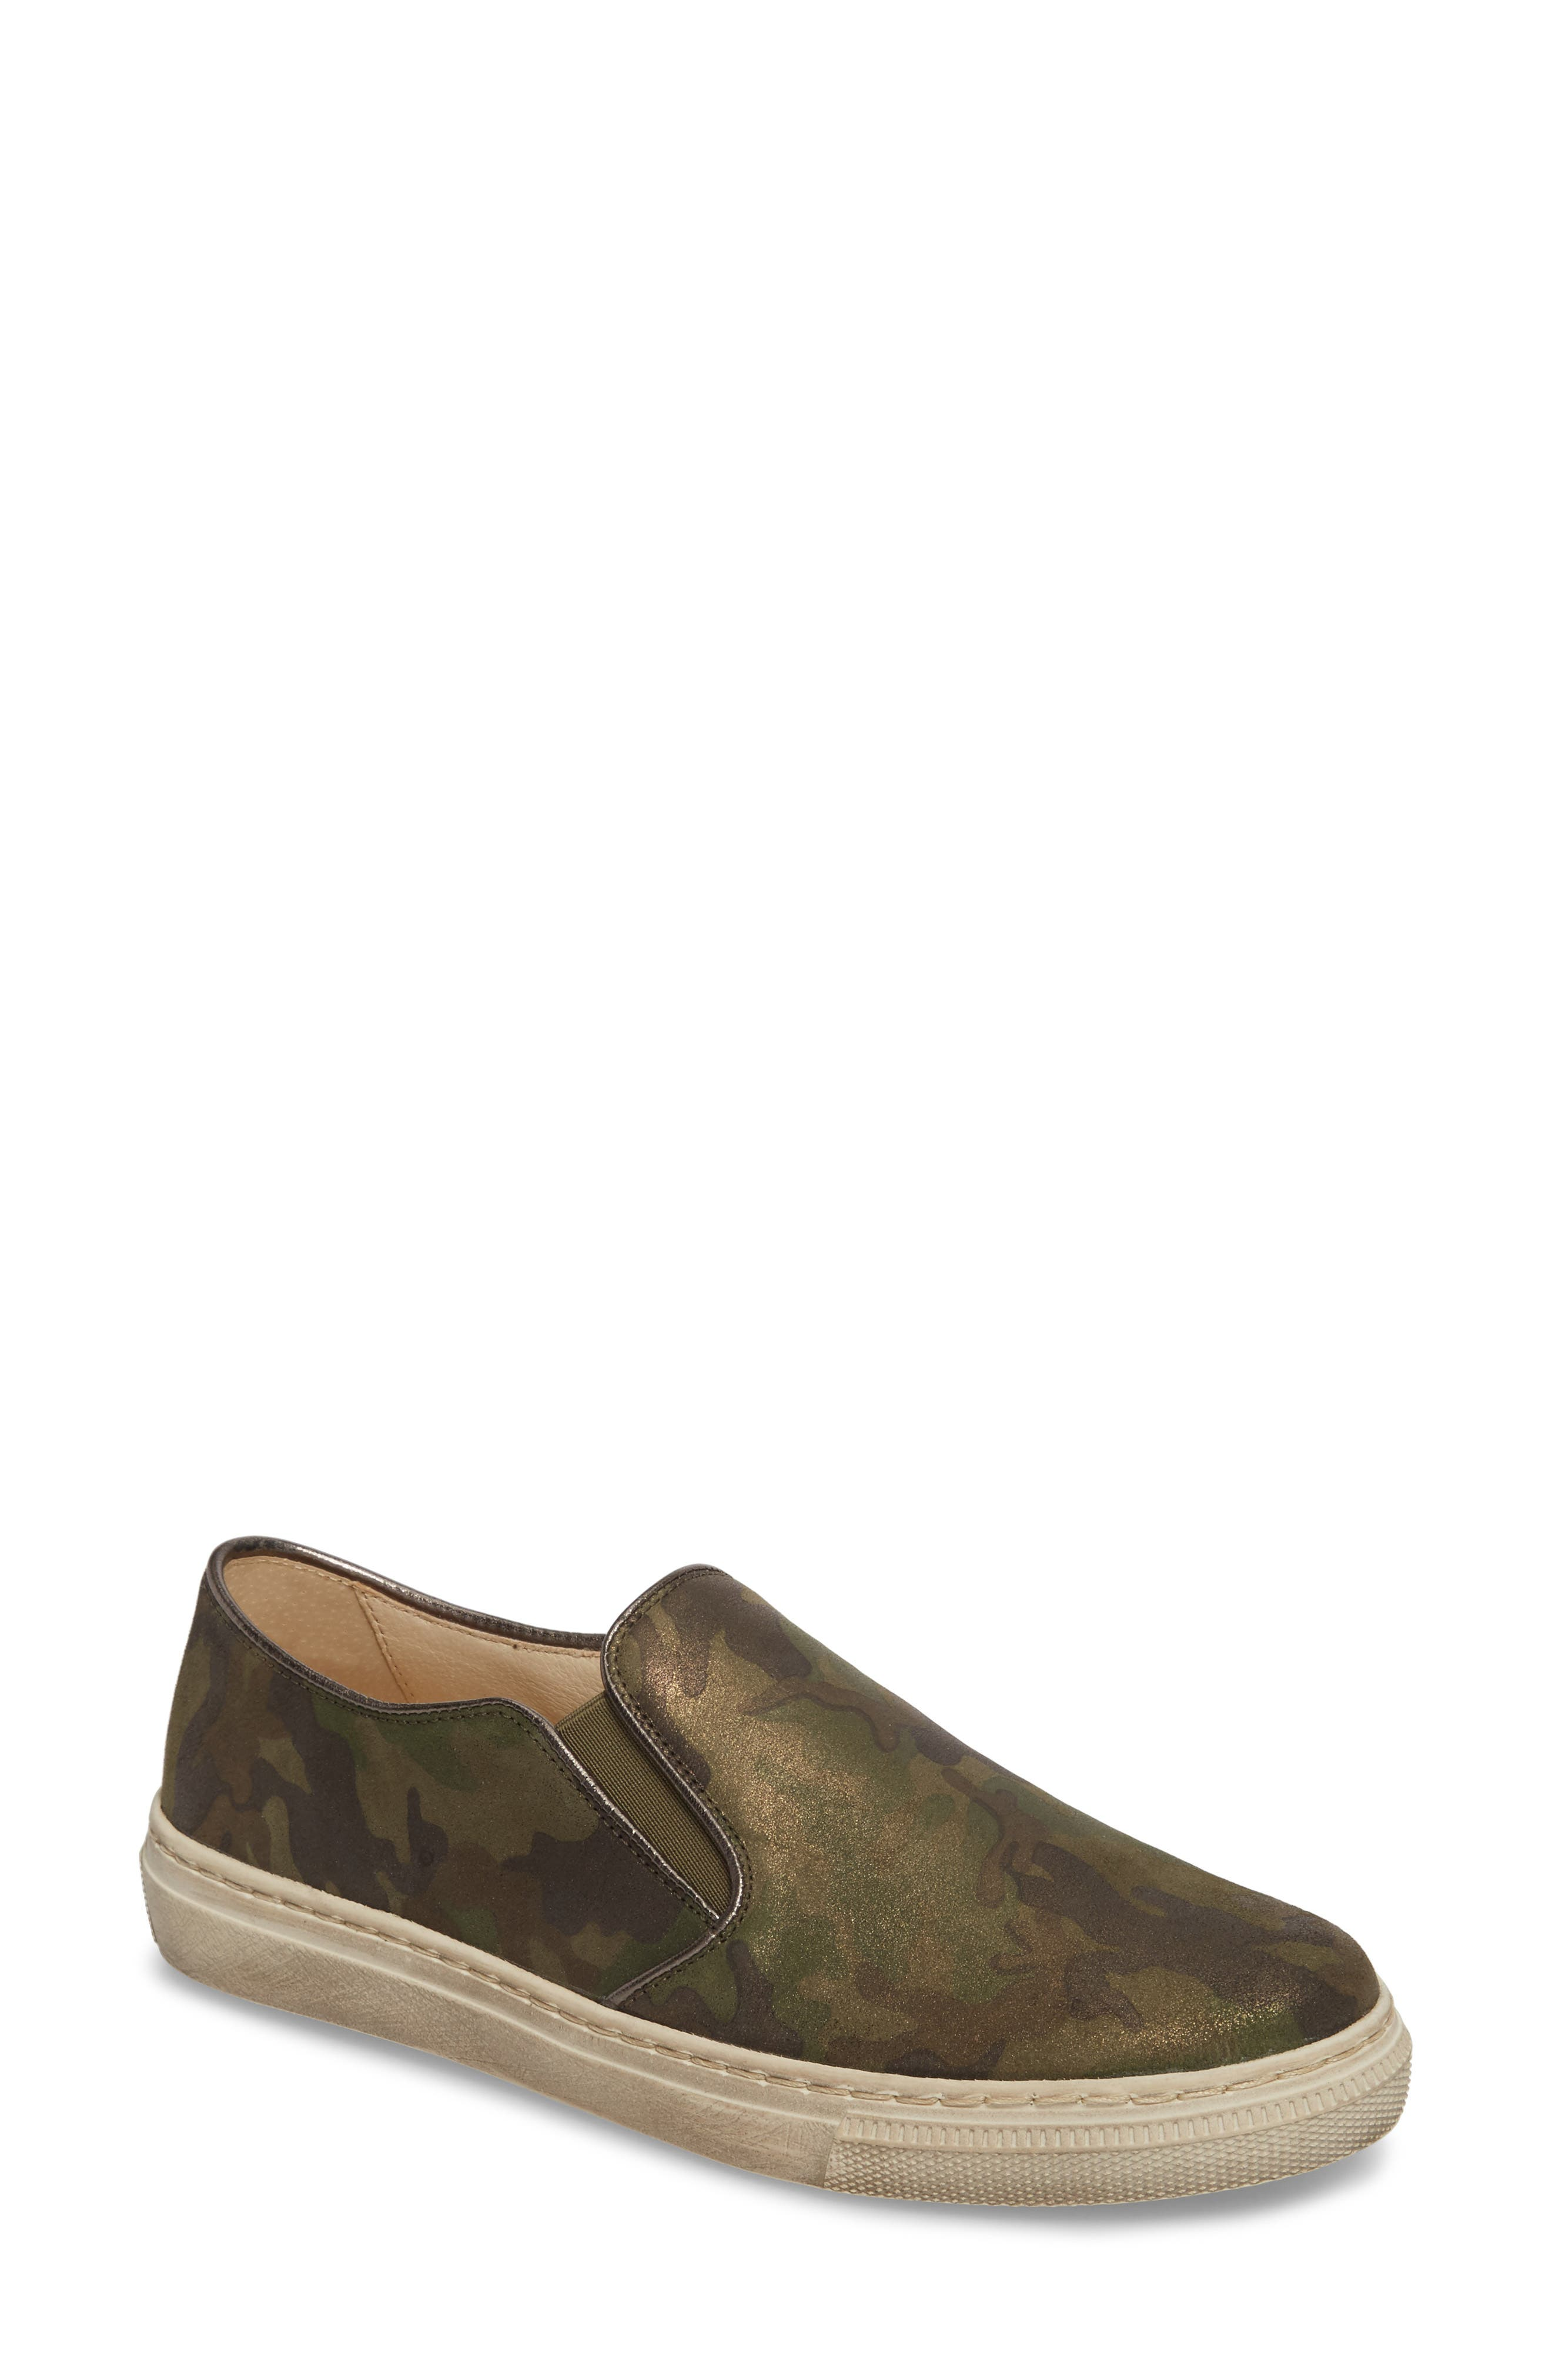 Slip-On Sneaker,                             Main thumbnail 1, color,                             Green Leather